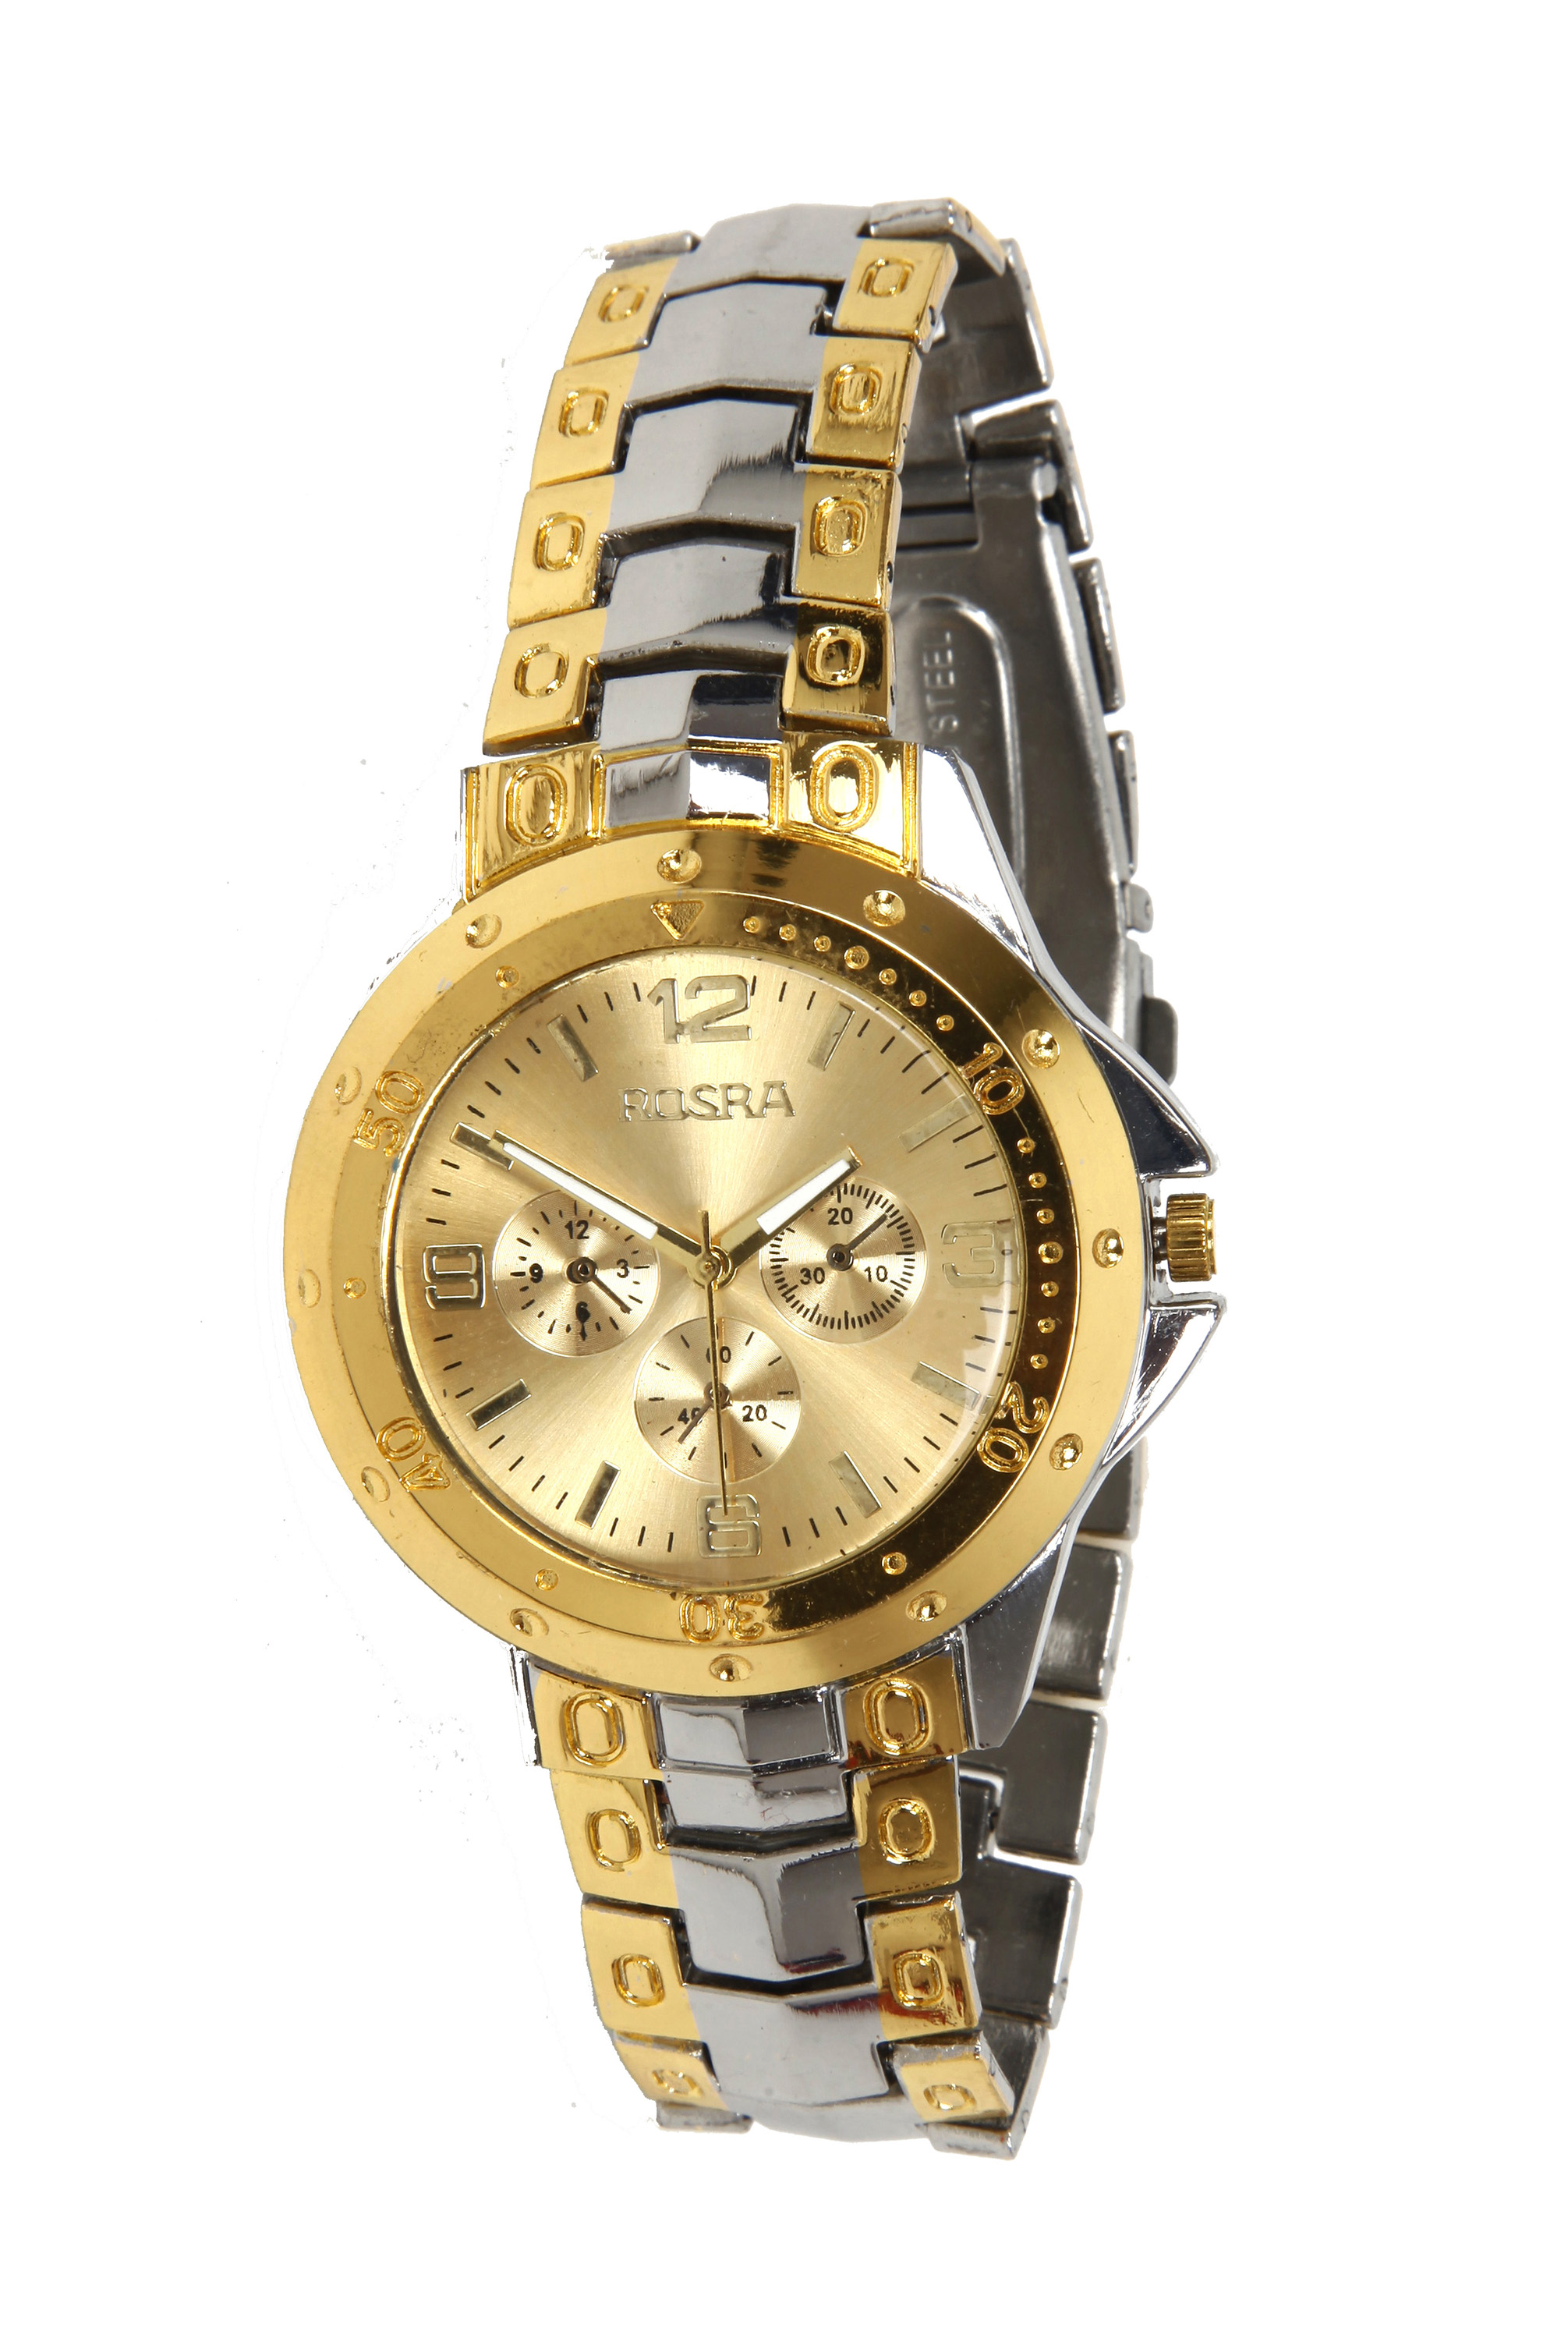 Rosra steel golden wrist watch for men 006 online at best price from for Rosra watches